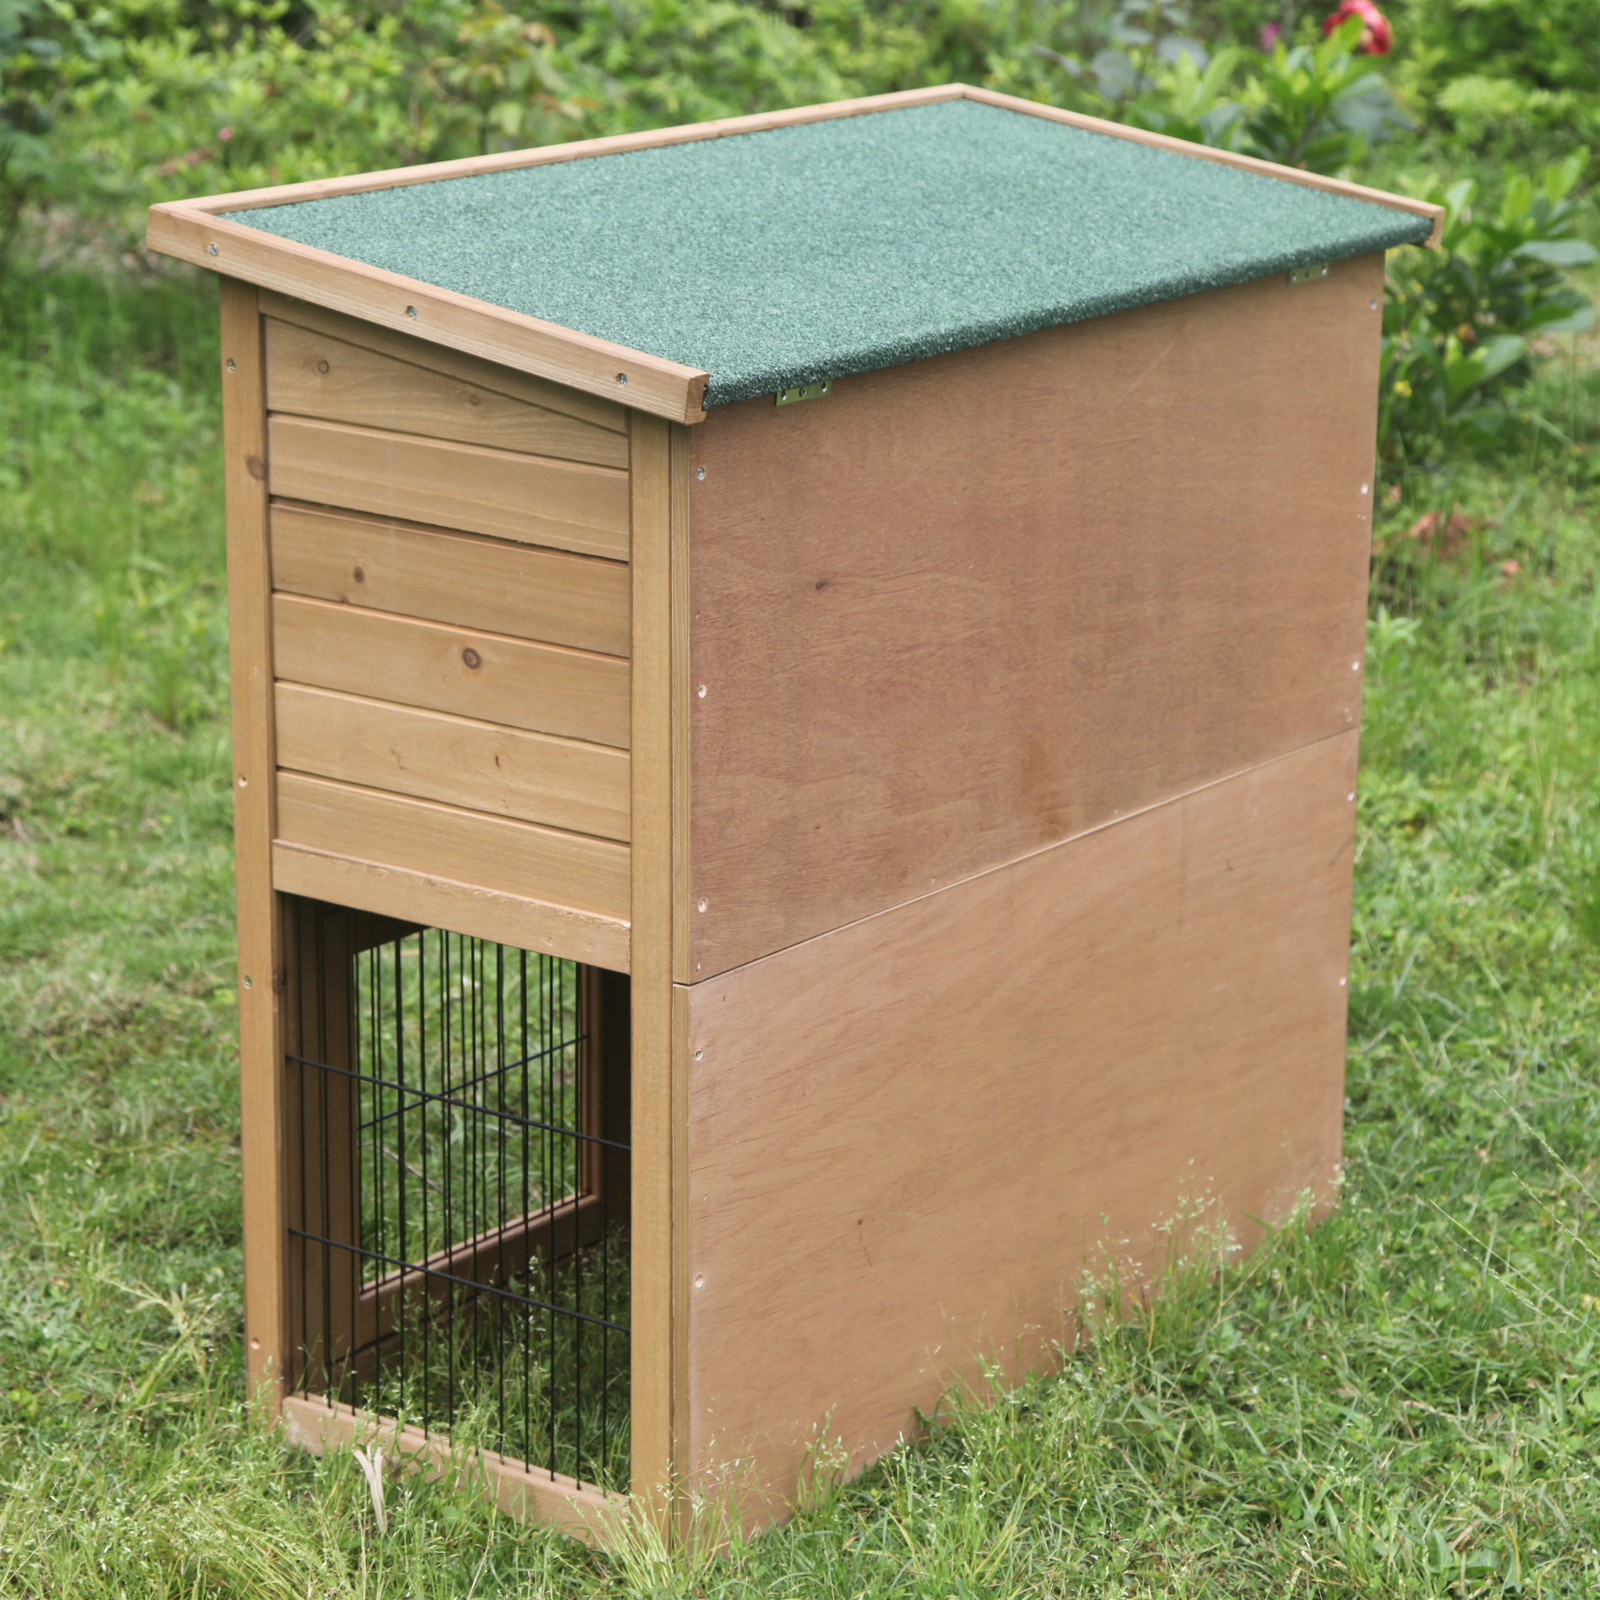 Large rabbit hutch wooden 2 tier pet cage house outdoor for Outdoor guinea pig hutch